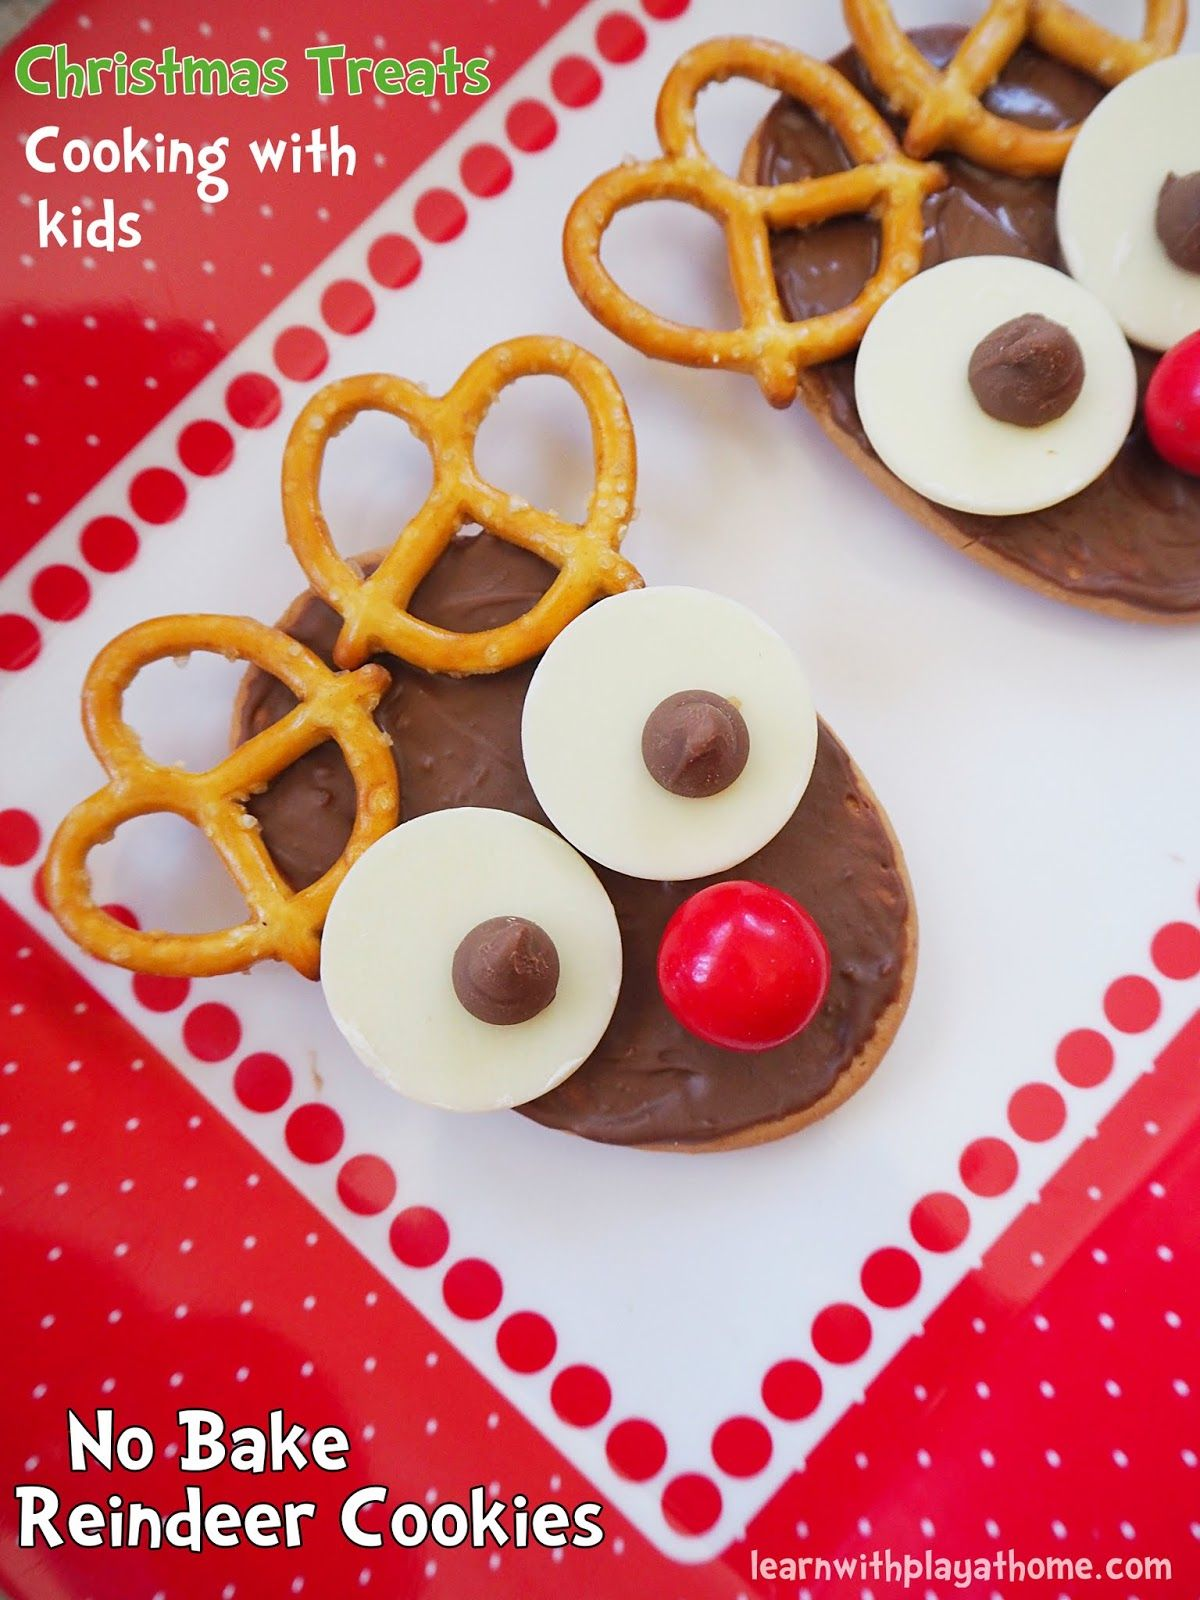 No Bake Reindeer Cookies. Fun Christmas Food Idea